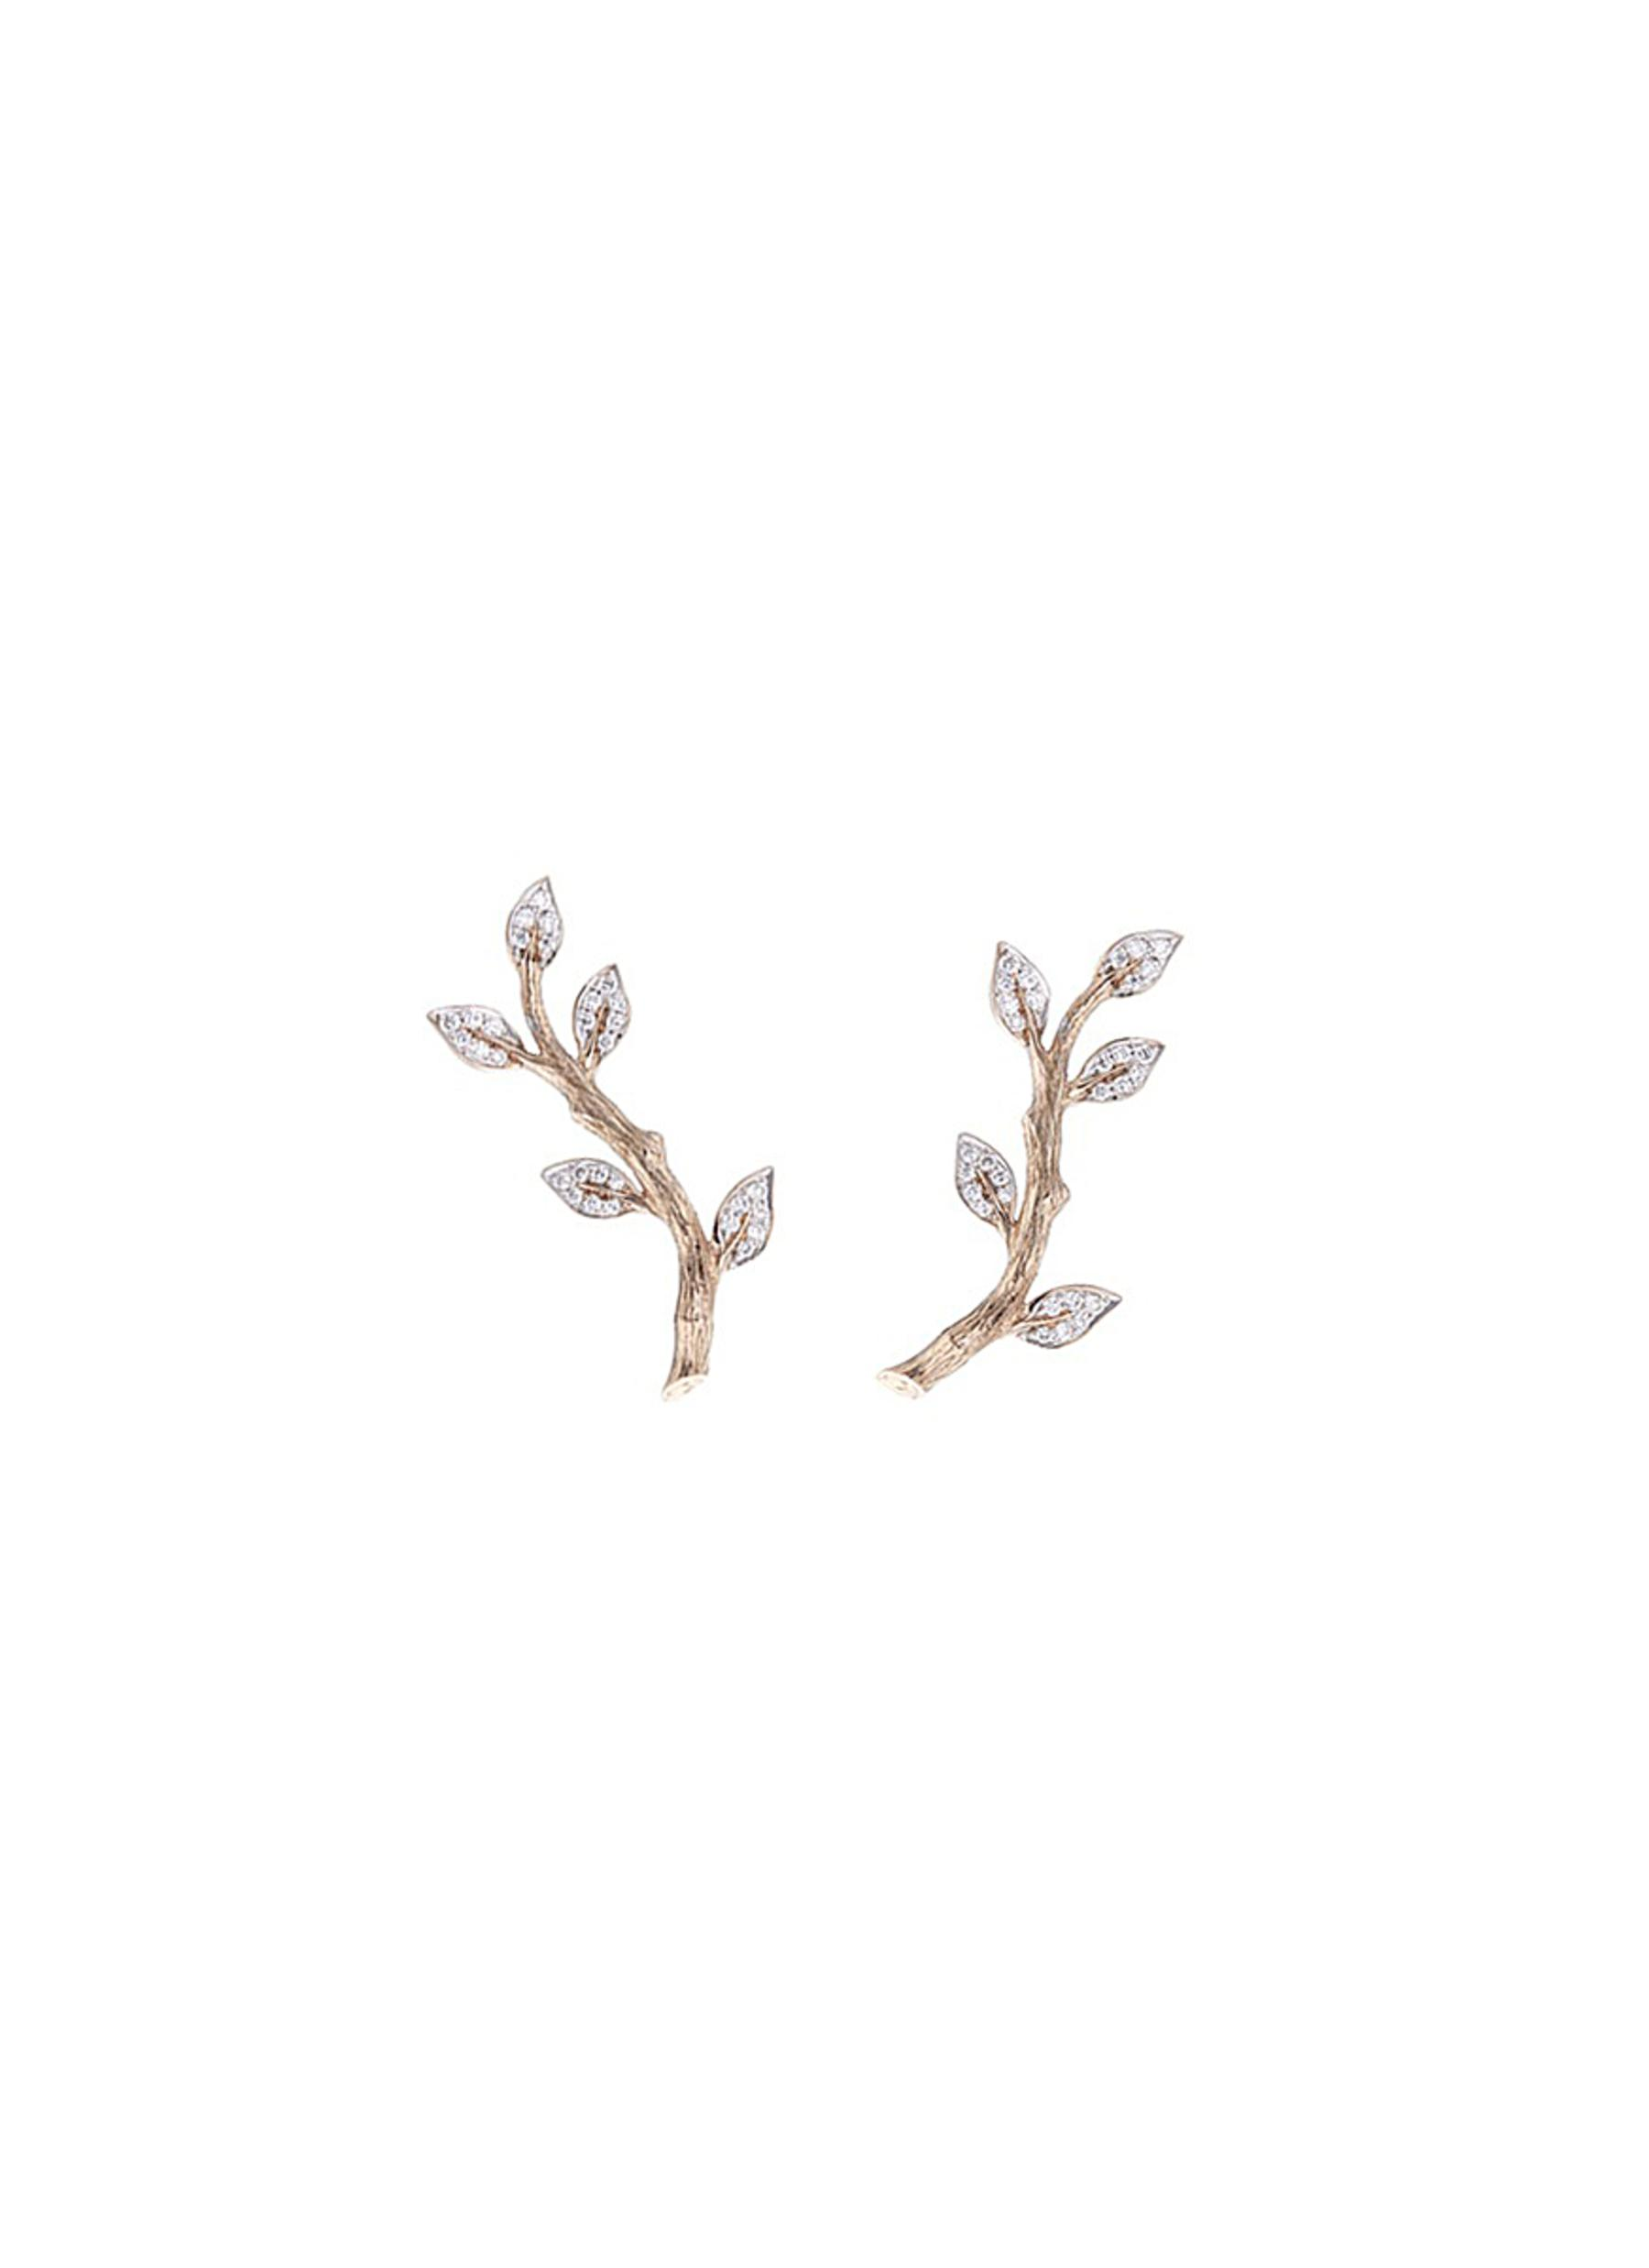 Entwined diamond 18k rose gold climber earrings by Anyallerie